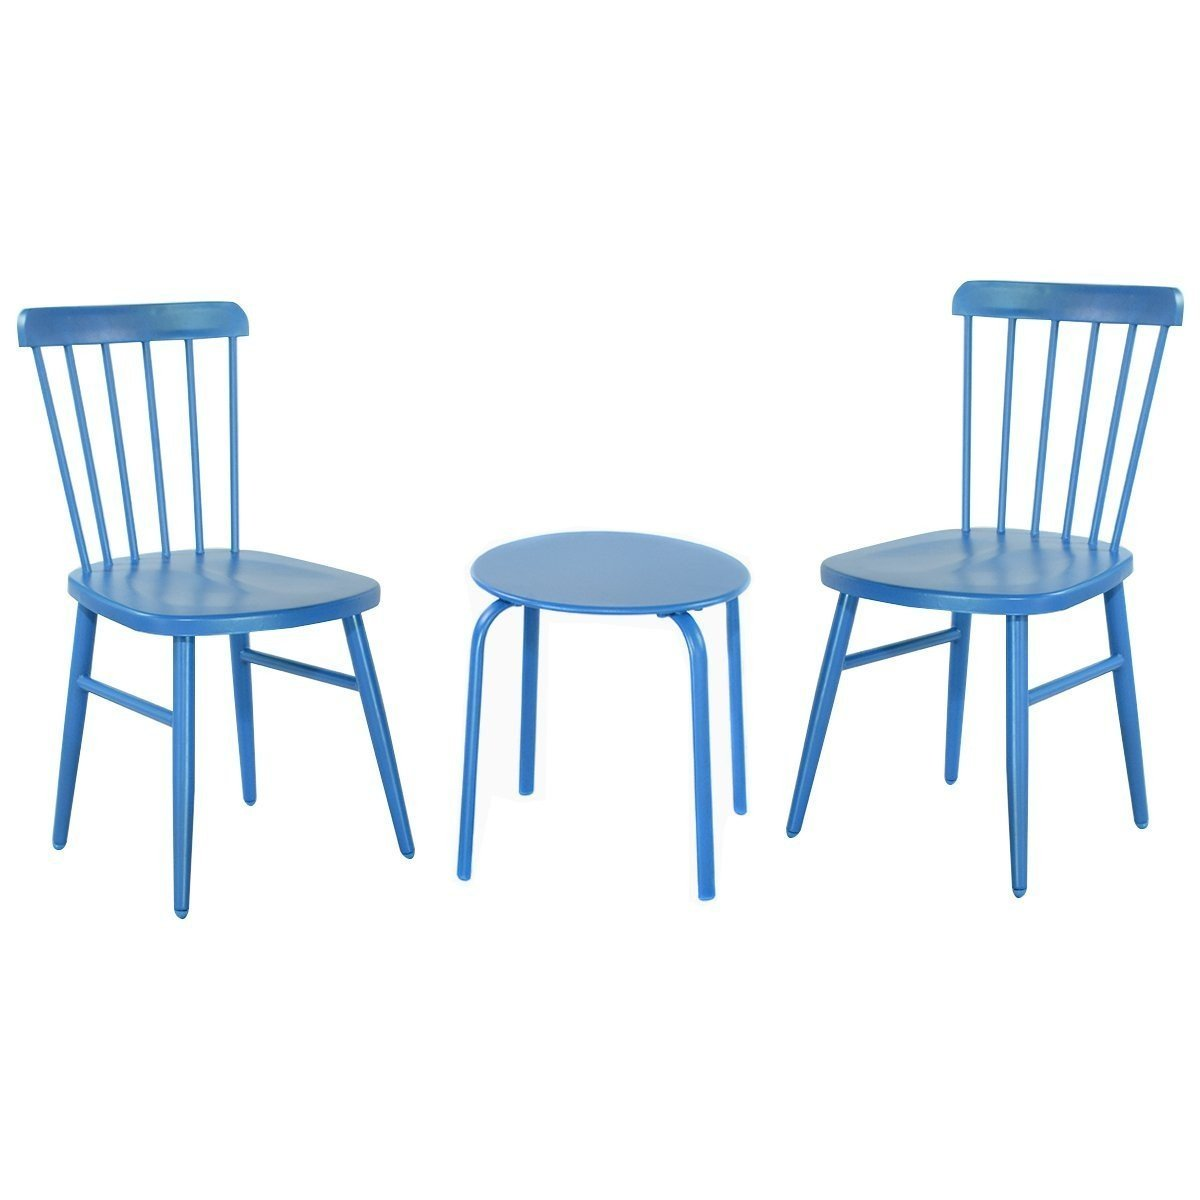 MD Group Bistro Table Chair Sets Outdoor Patio Blue Steel Heavy Duty Frame Kitchen Bar Stool